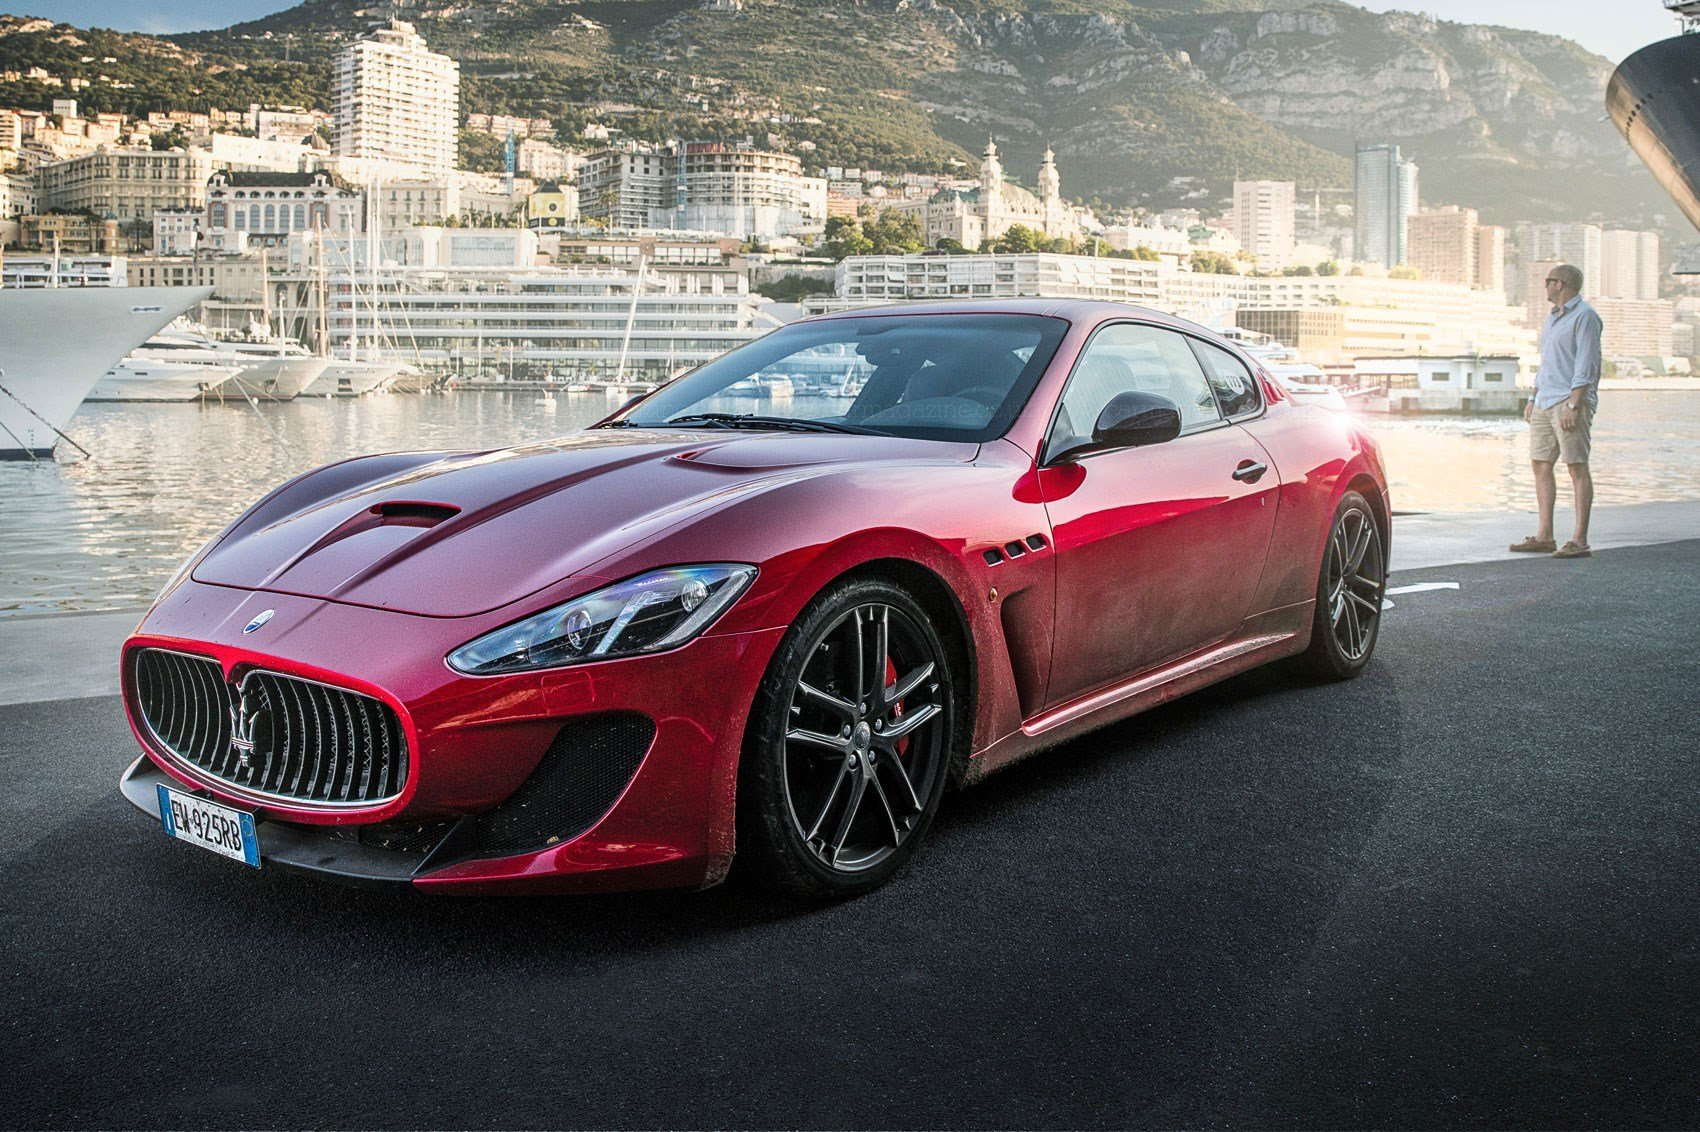 Latest Some Like It Yacht Driving A Maserati To Monaco By Car Free Download